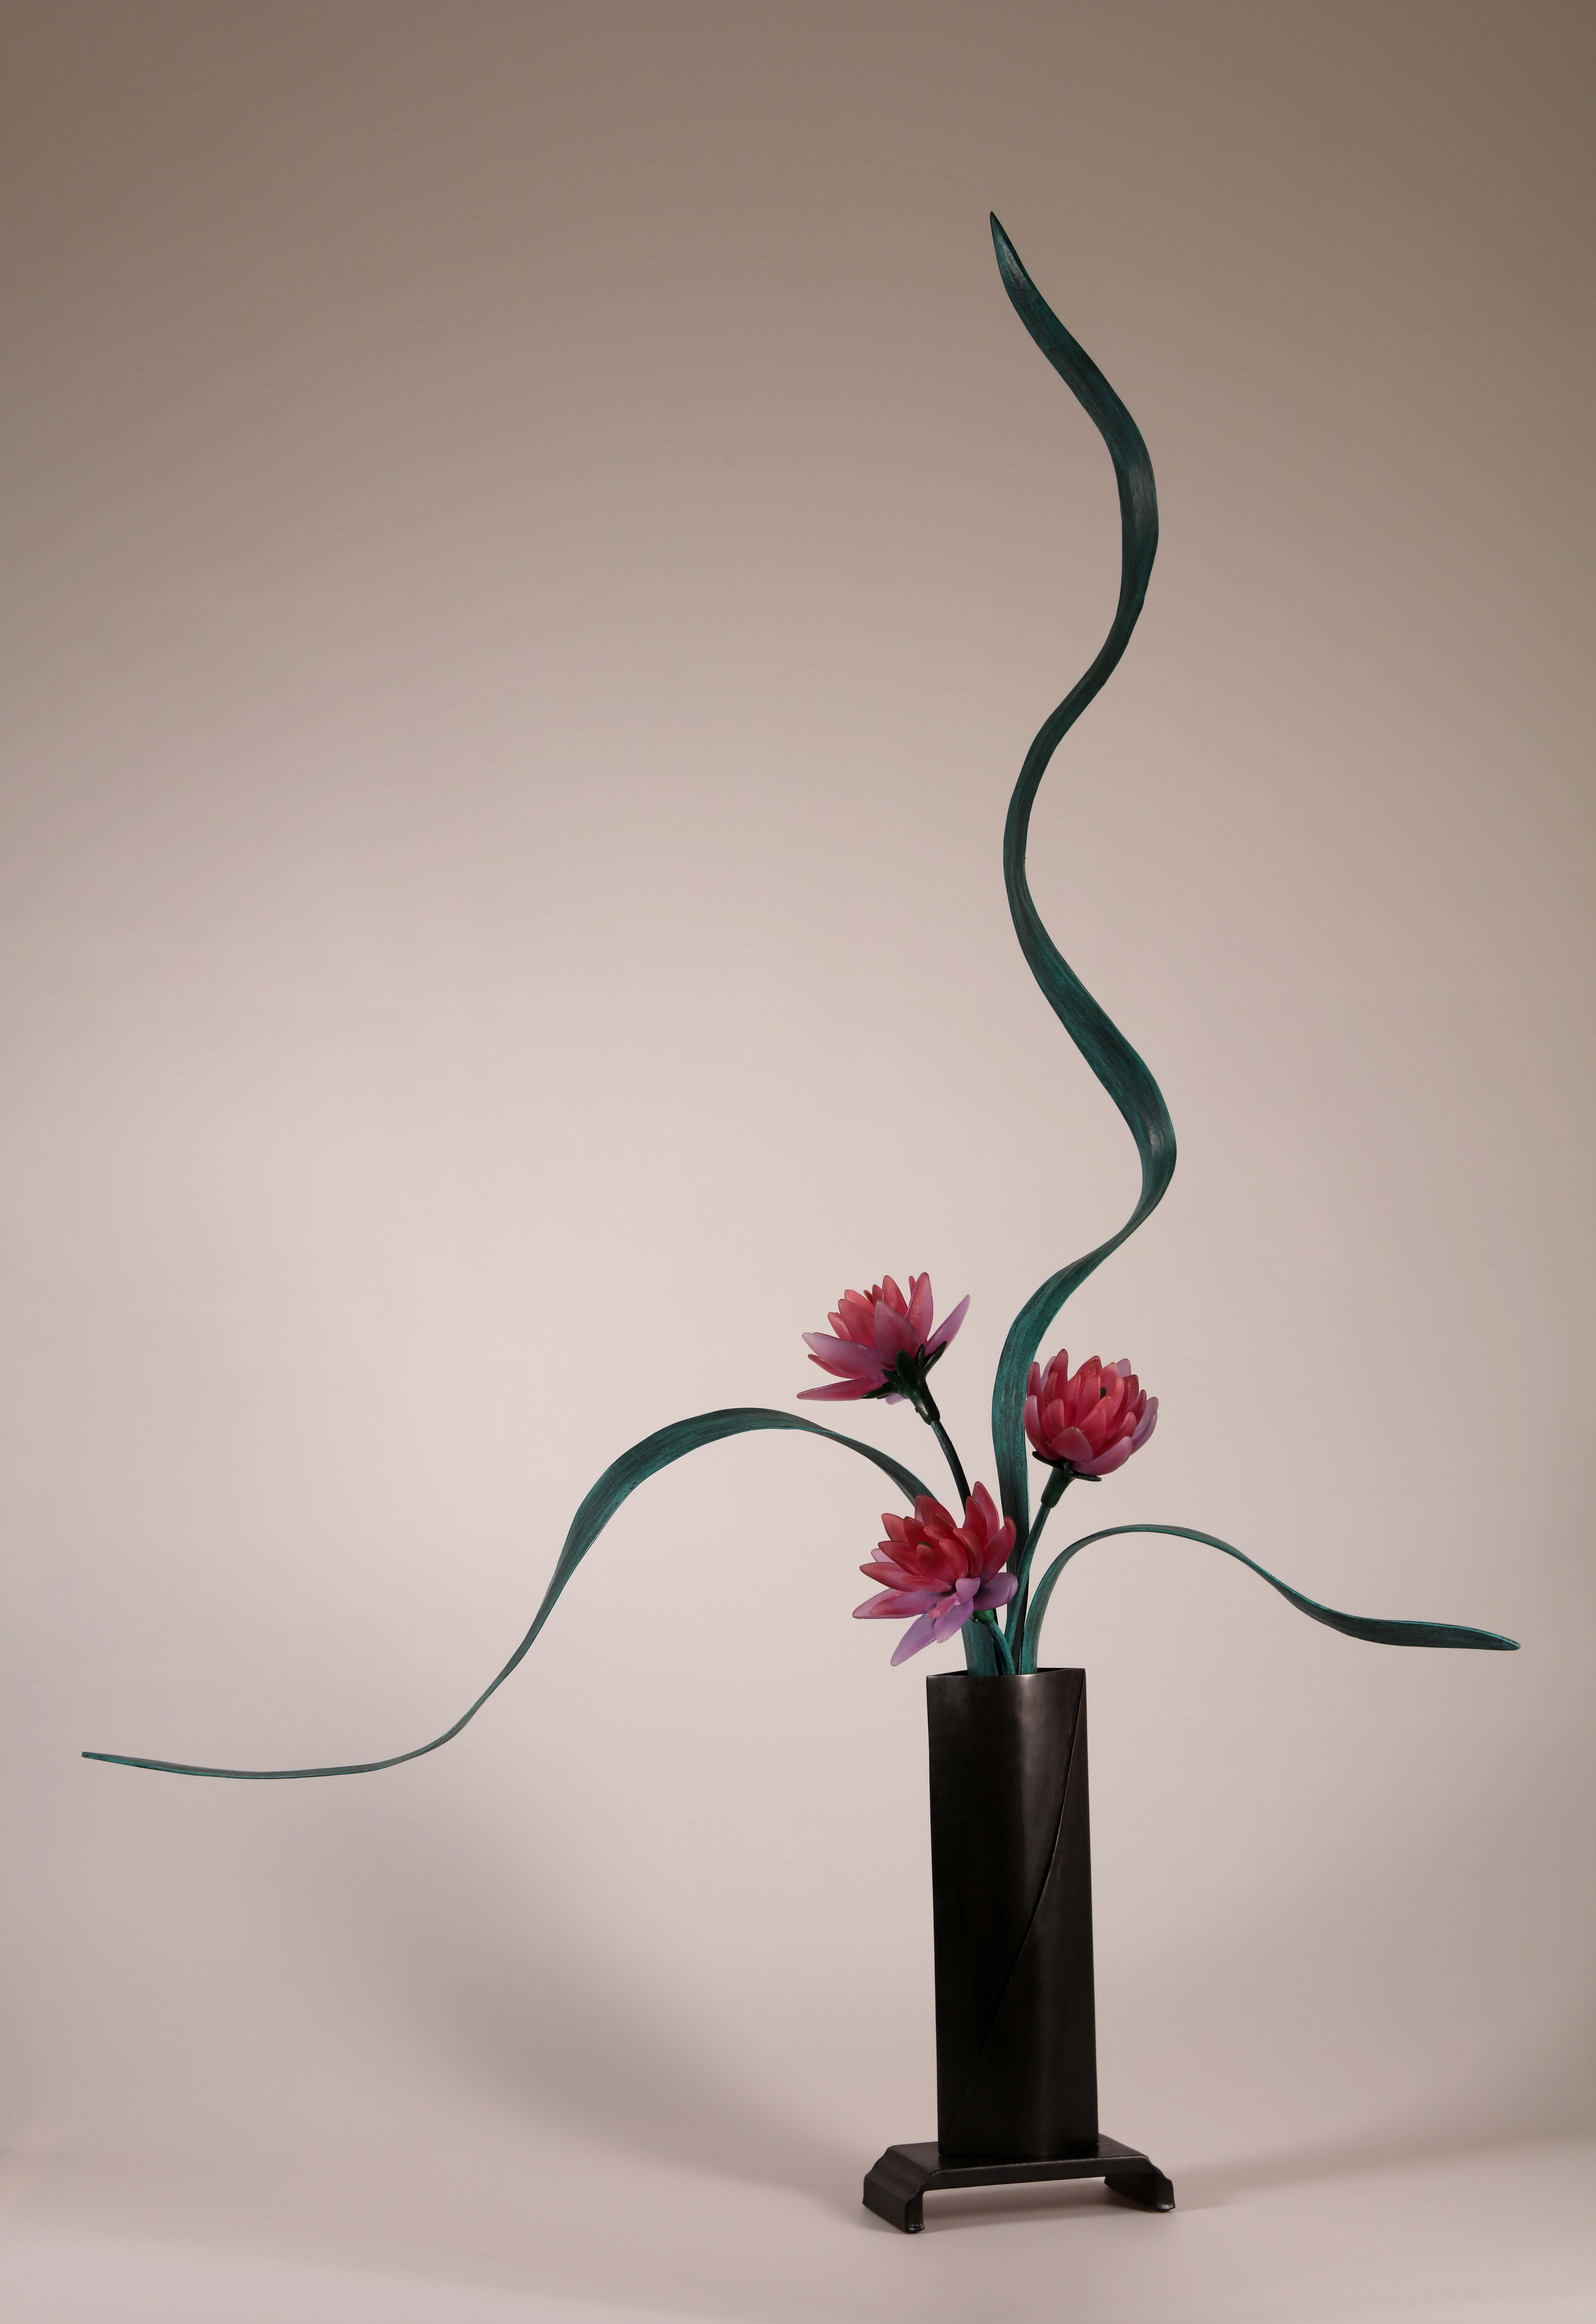 Sculptural flower arrangement in cast glass with ruby pink flowers, green steel leaves, tall vase in deep brown.